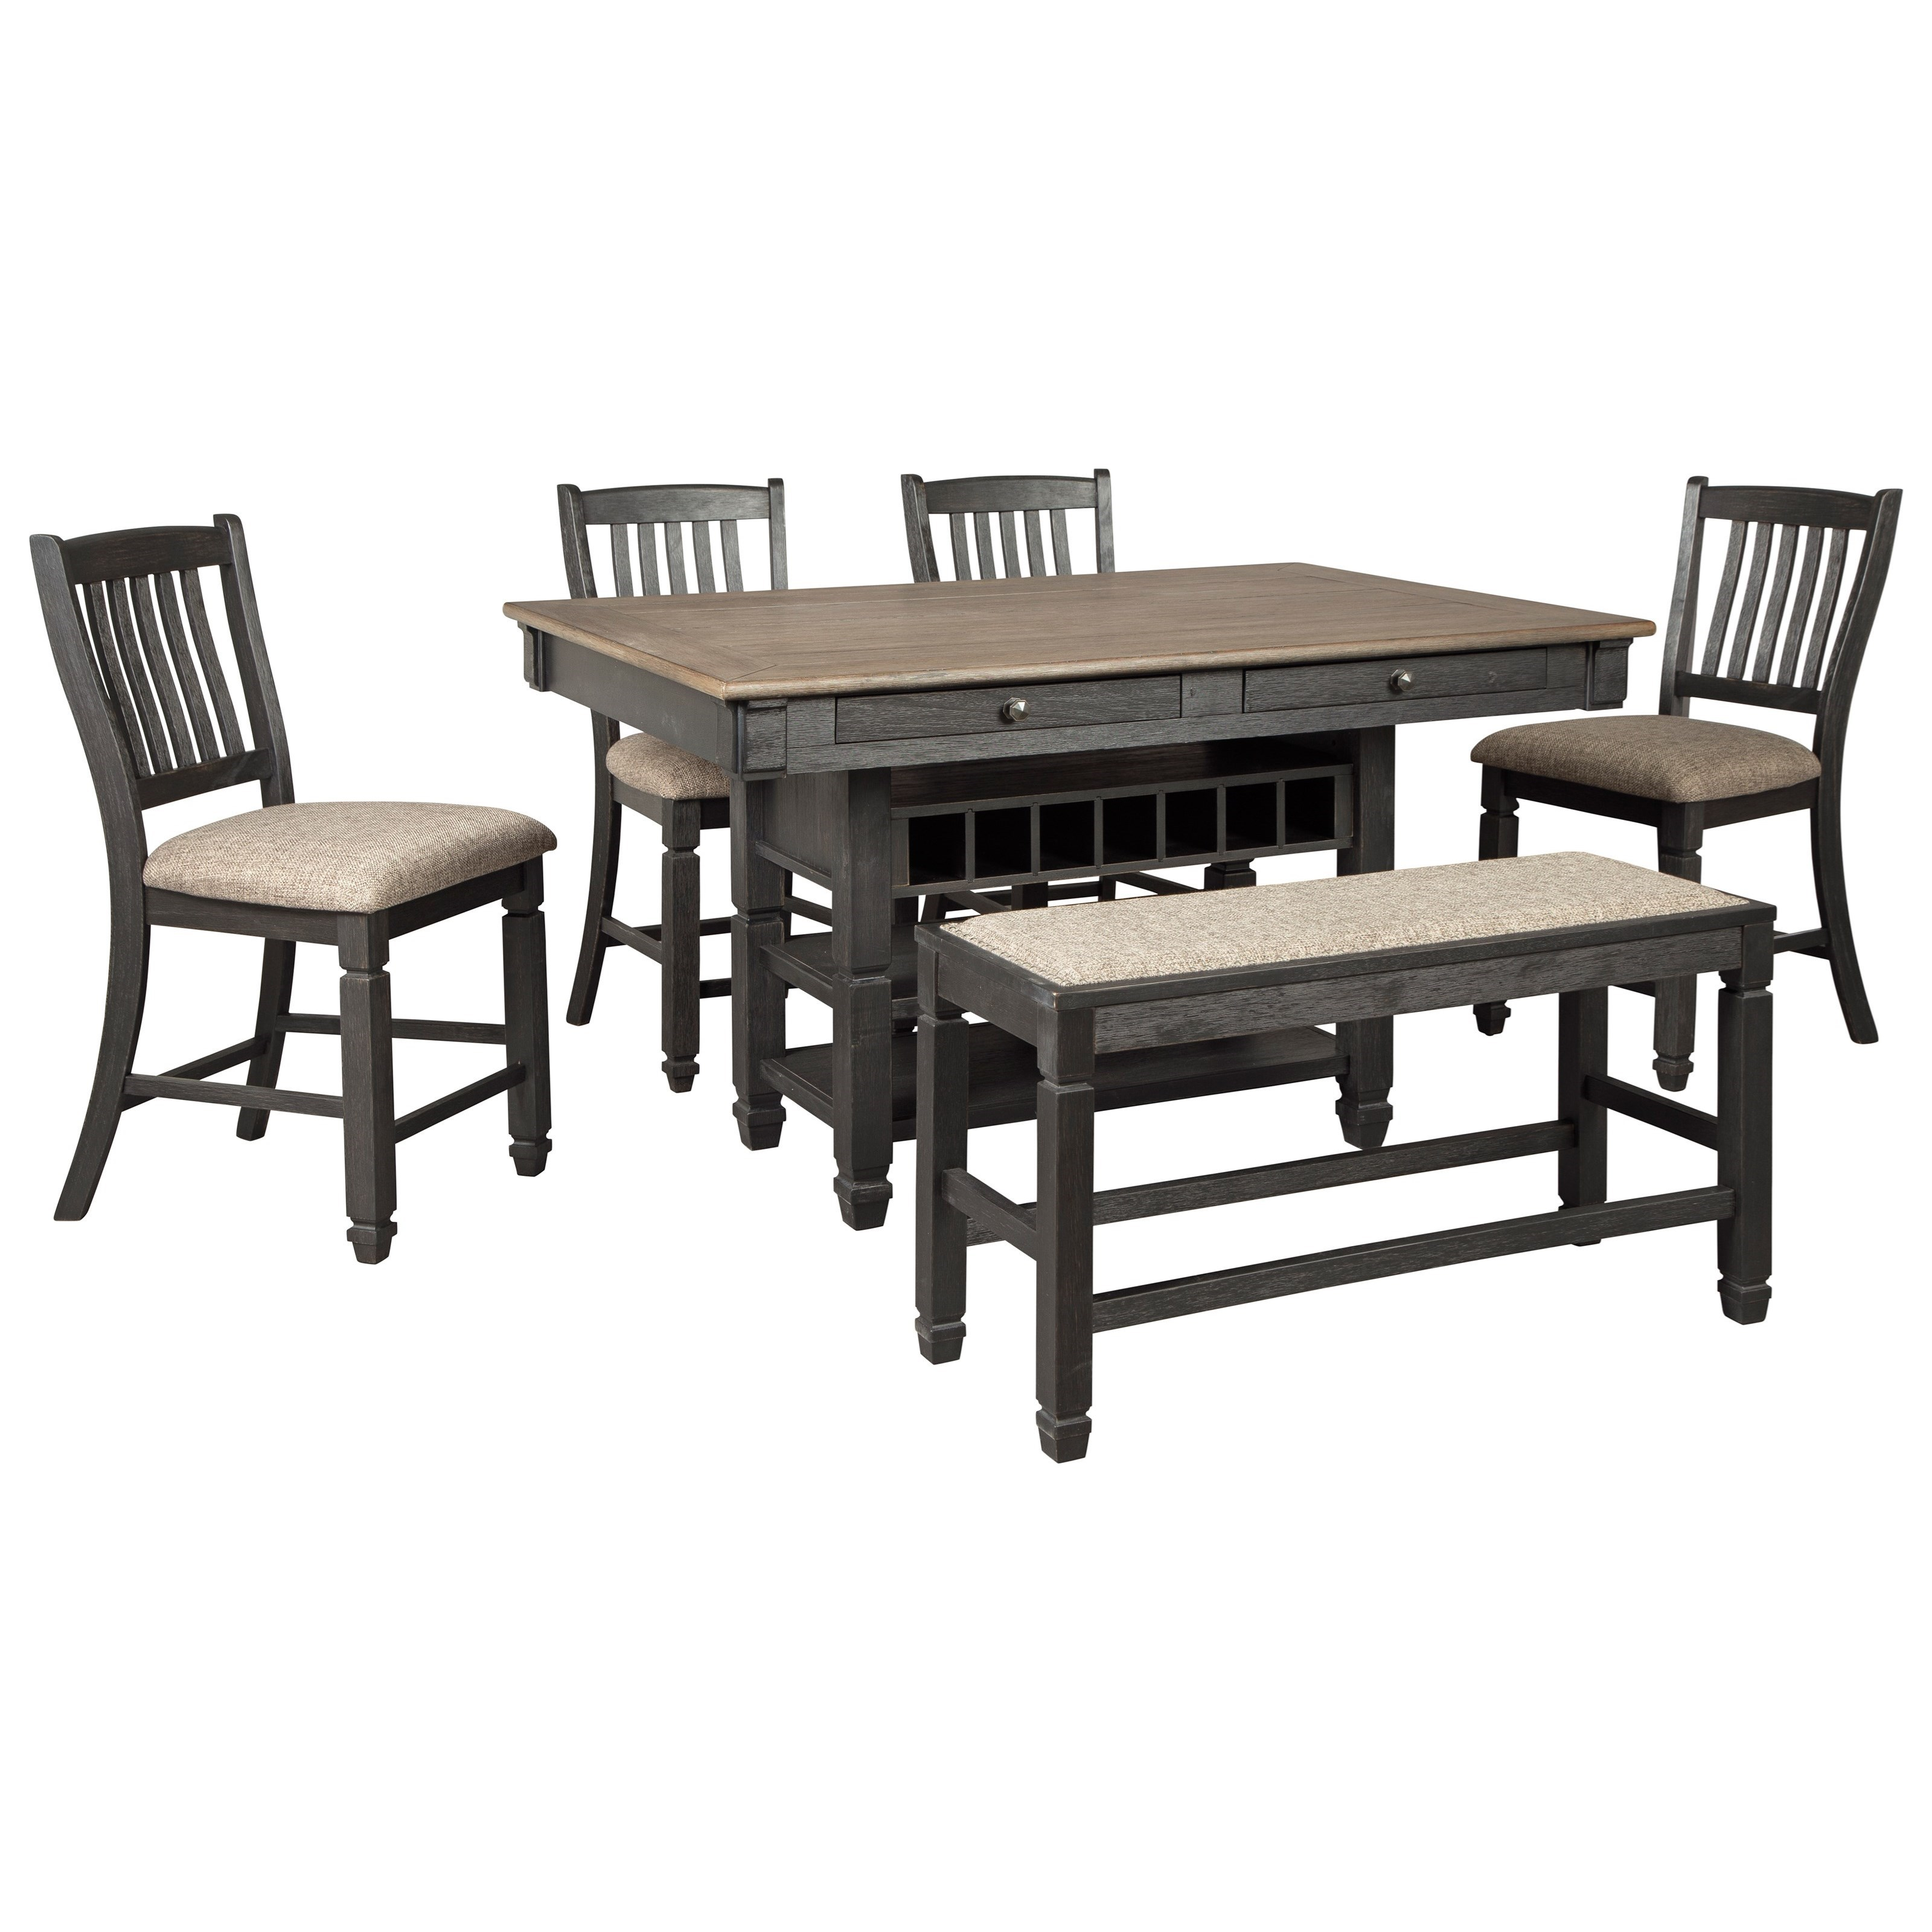 Tyler Creek 6-Piece Counter Table Set with Bench by Ashley (Signature Design) at Johnny Janosik